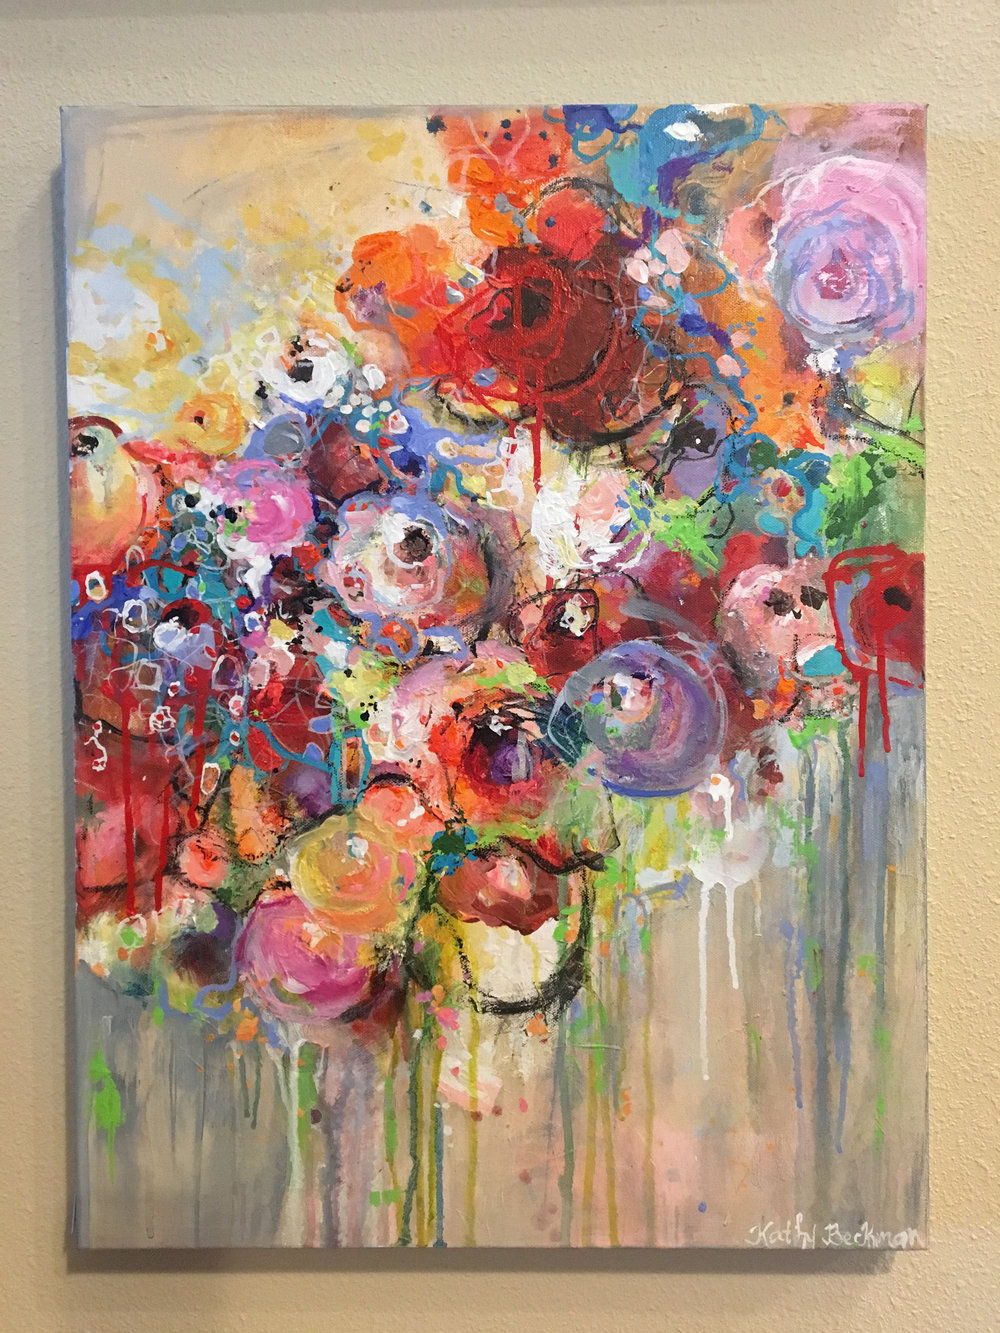 Kathy Beckman New Day 300dpi.jpg